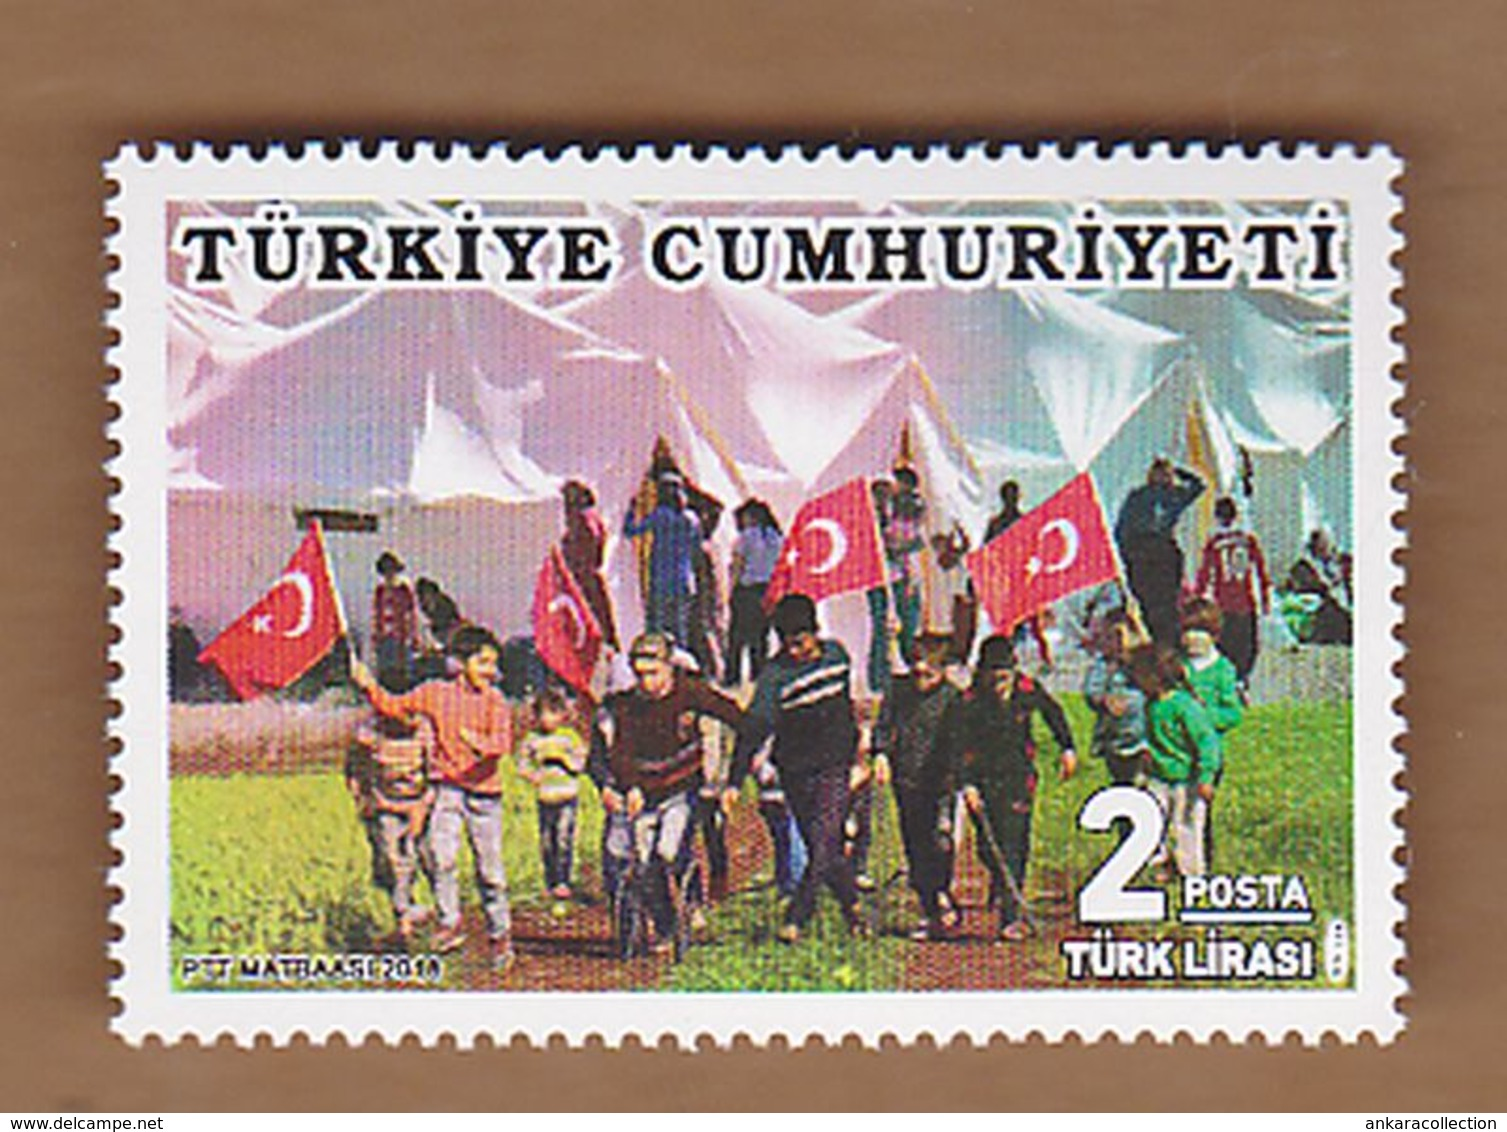 AC - TURKEY STAMP - APRIL 23th NATIONAL SOVEREIGNTY AND CHILDREN'S DAY MNH 23APRIL 2018 - 1921-... República